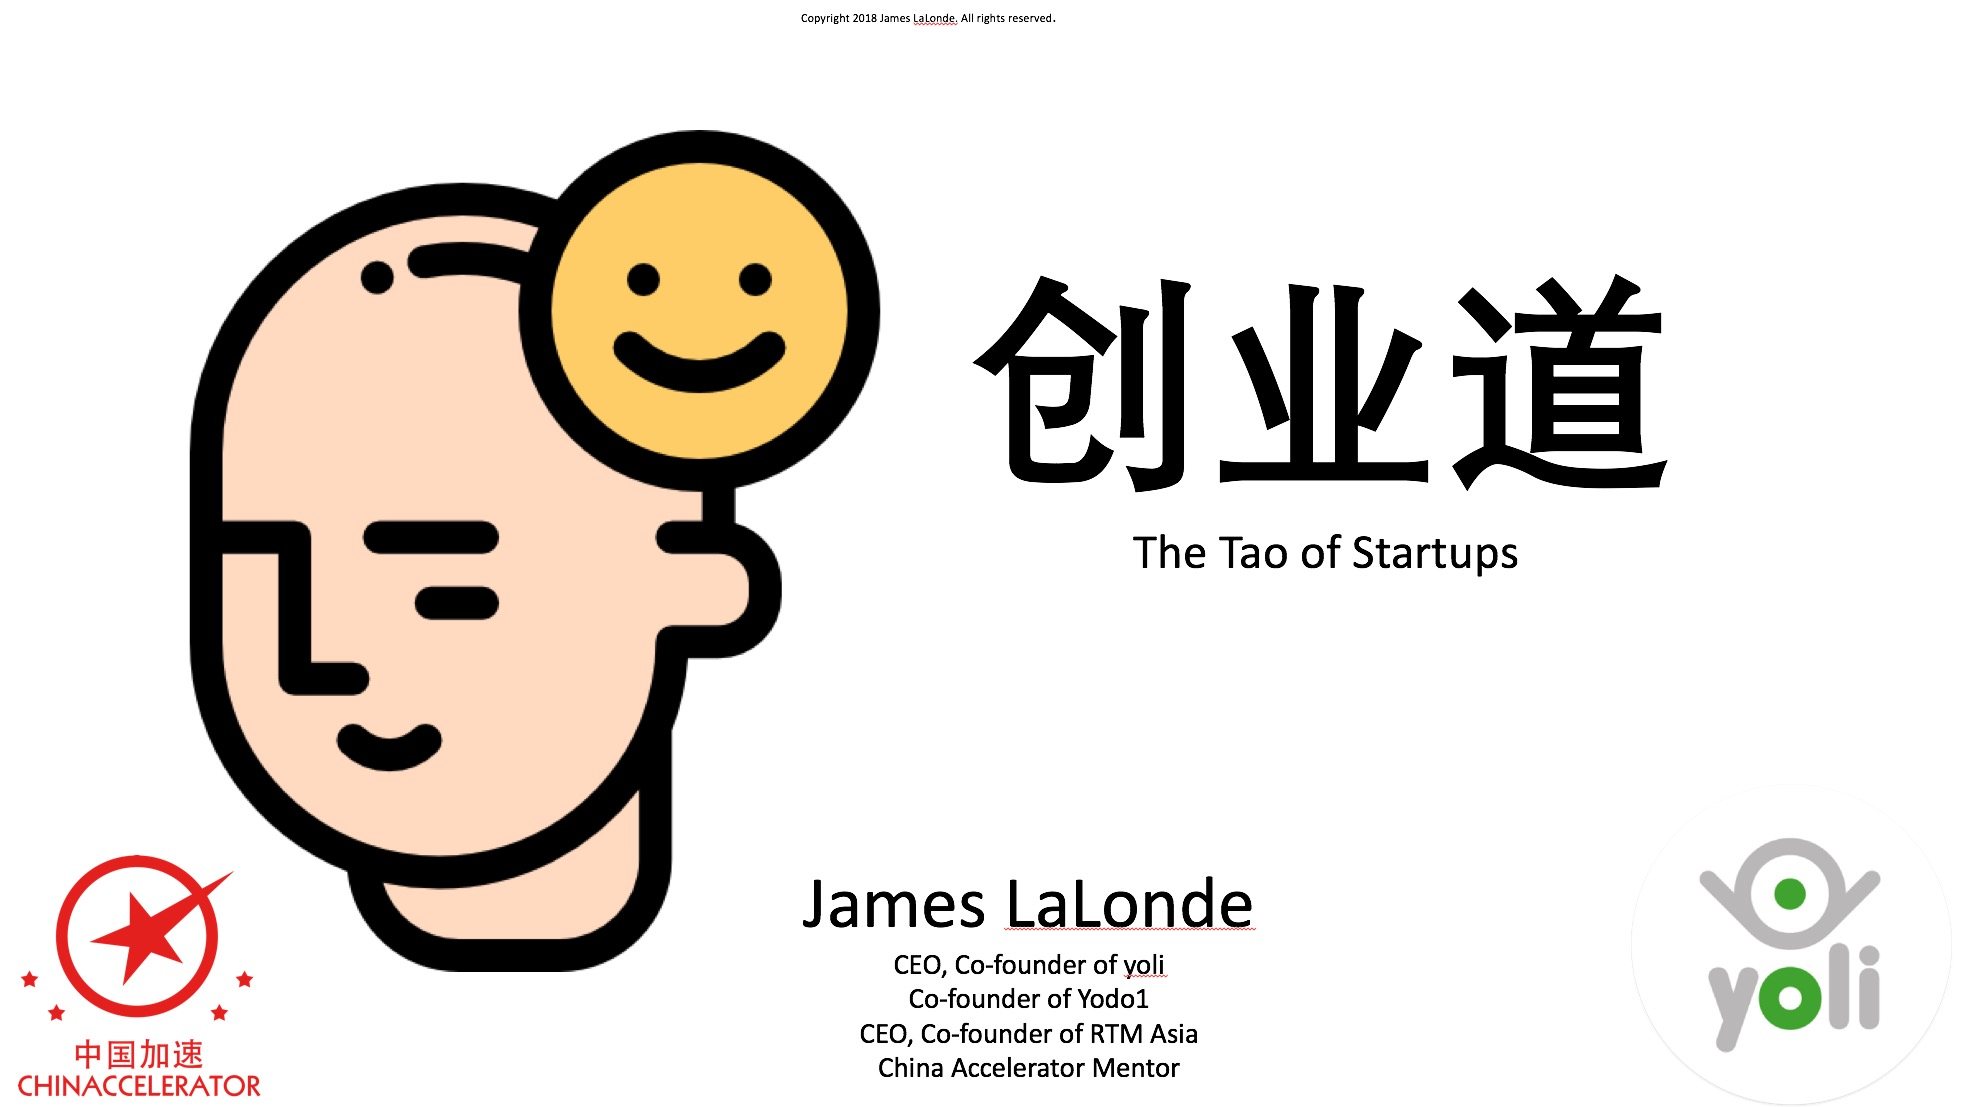 "This speech ""Tao of Startups"" is one I gave to an audience of entrepreneurs and investors on March 23, 2018 at the China Accelerator 8x8 Event in Beijing. The purpose of the talk was to take the audience through the entire ""cycle"" of creating a startup and discuss what is important (and what is not important) during each phase. Doing a startup is difficult and can be extremely stressful. It can also be extremely fulfilling. I wanted to lead the audience through a ""guided meditation"" of sorts to put them in the proper frame of mind for doing a startup—to look at the process from a holistic point of view. I hope I was successful in some small way in accomplishing this!"